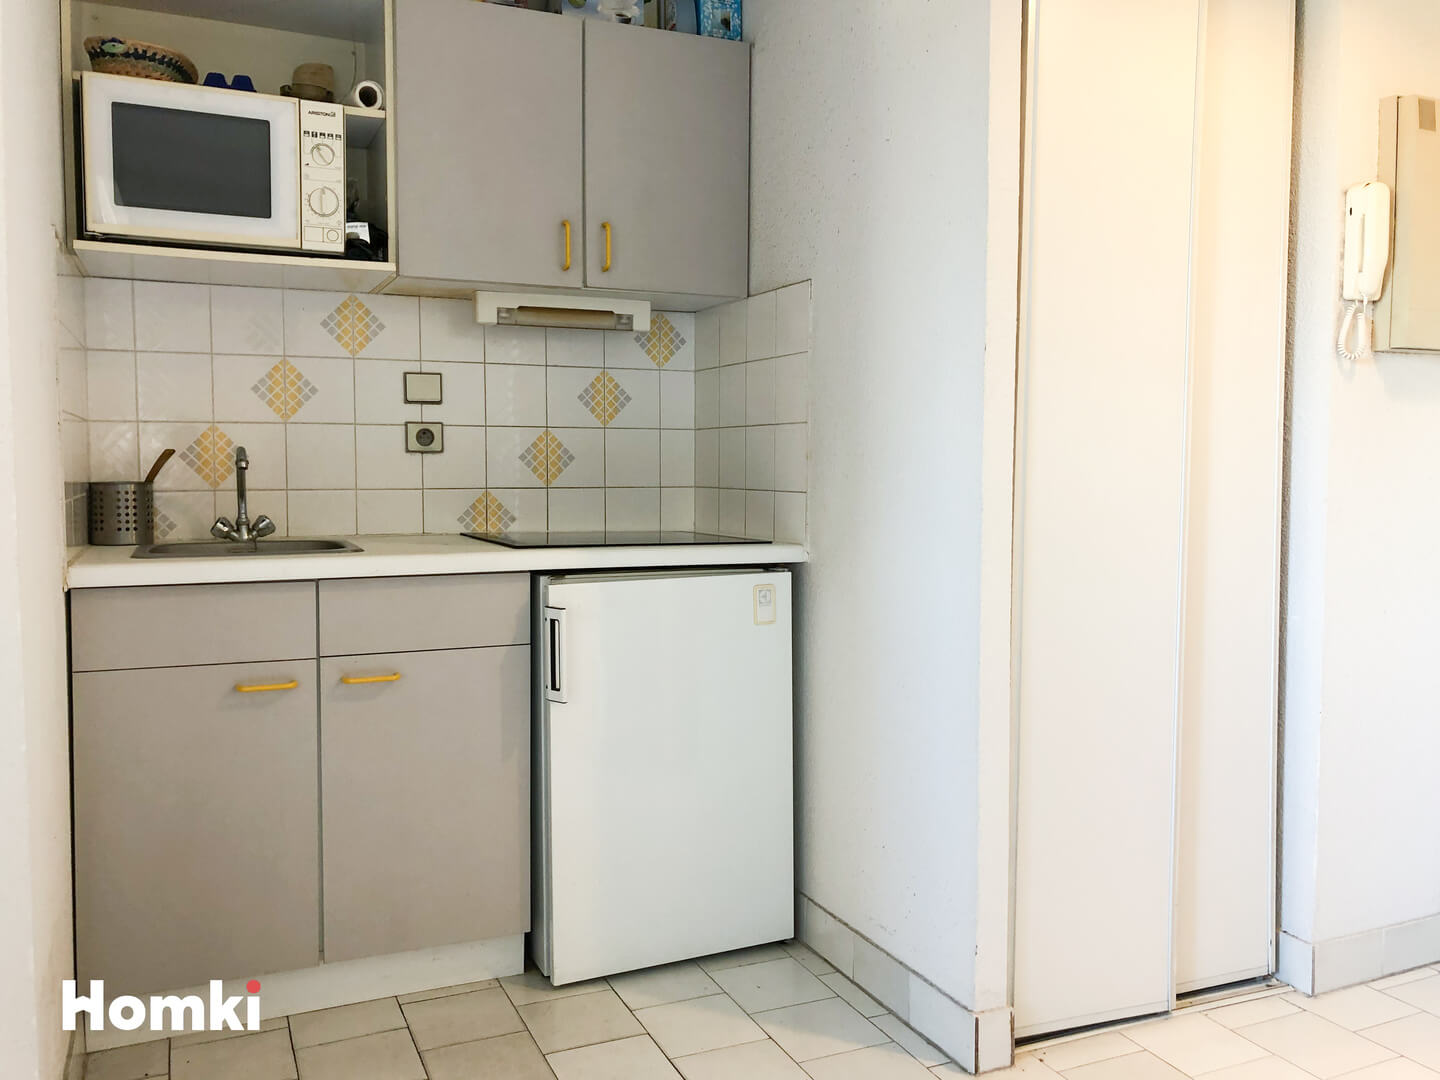 Homki - Vente Appartement  de 19.33 m² à Cannes 06150